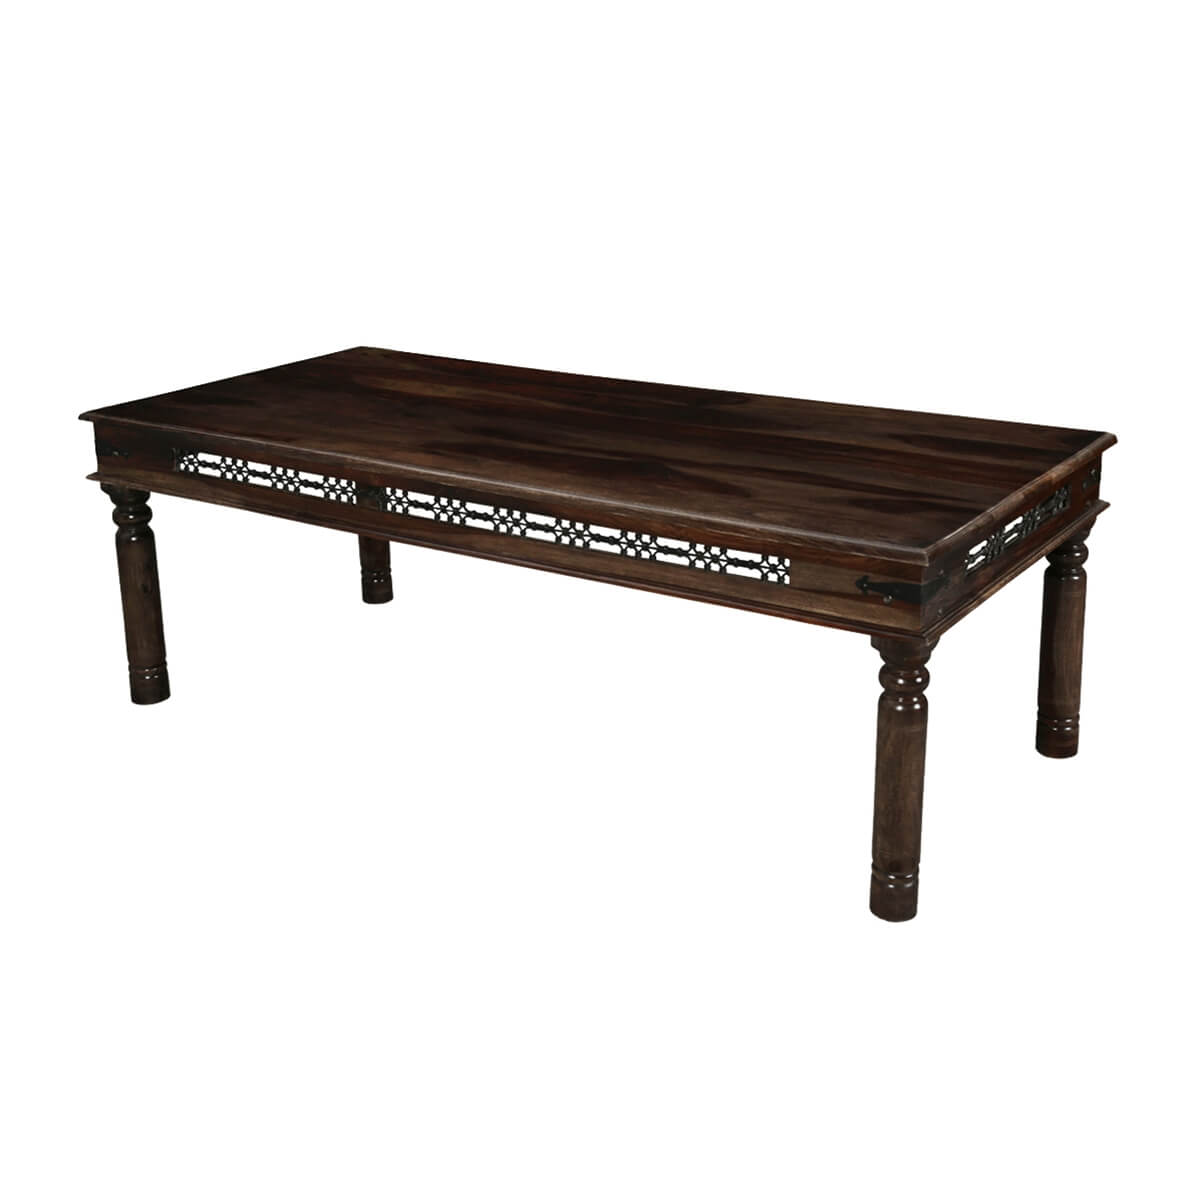 philadelphia classic solid wood iron grill large rustic dining table. Black Bedroom Furniture Sets. Home Design Ideas